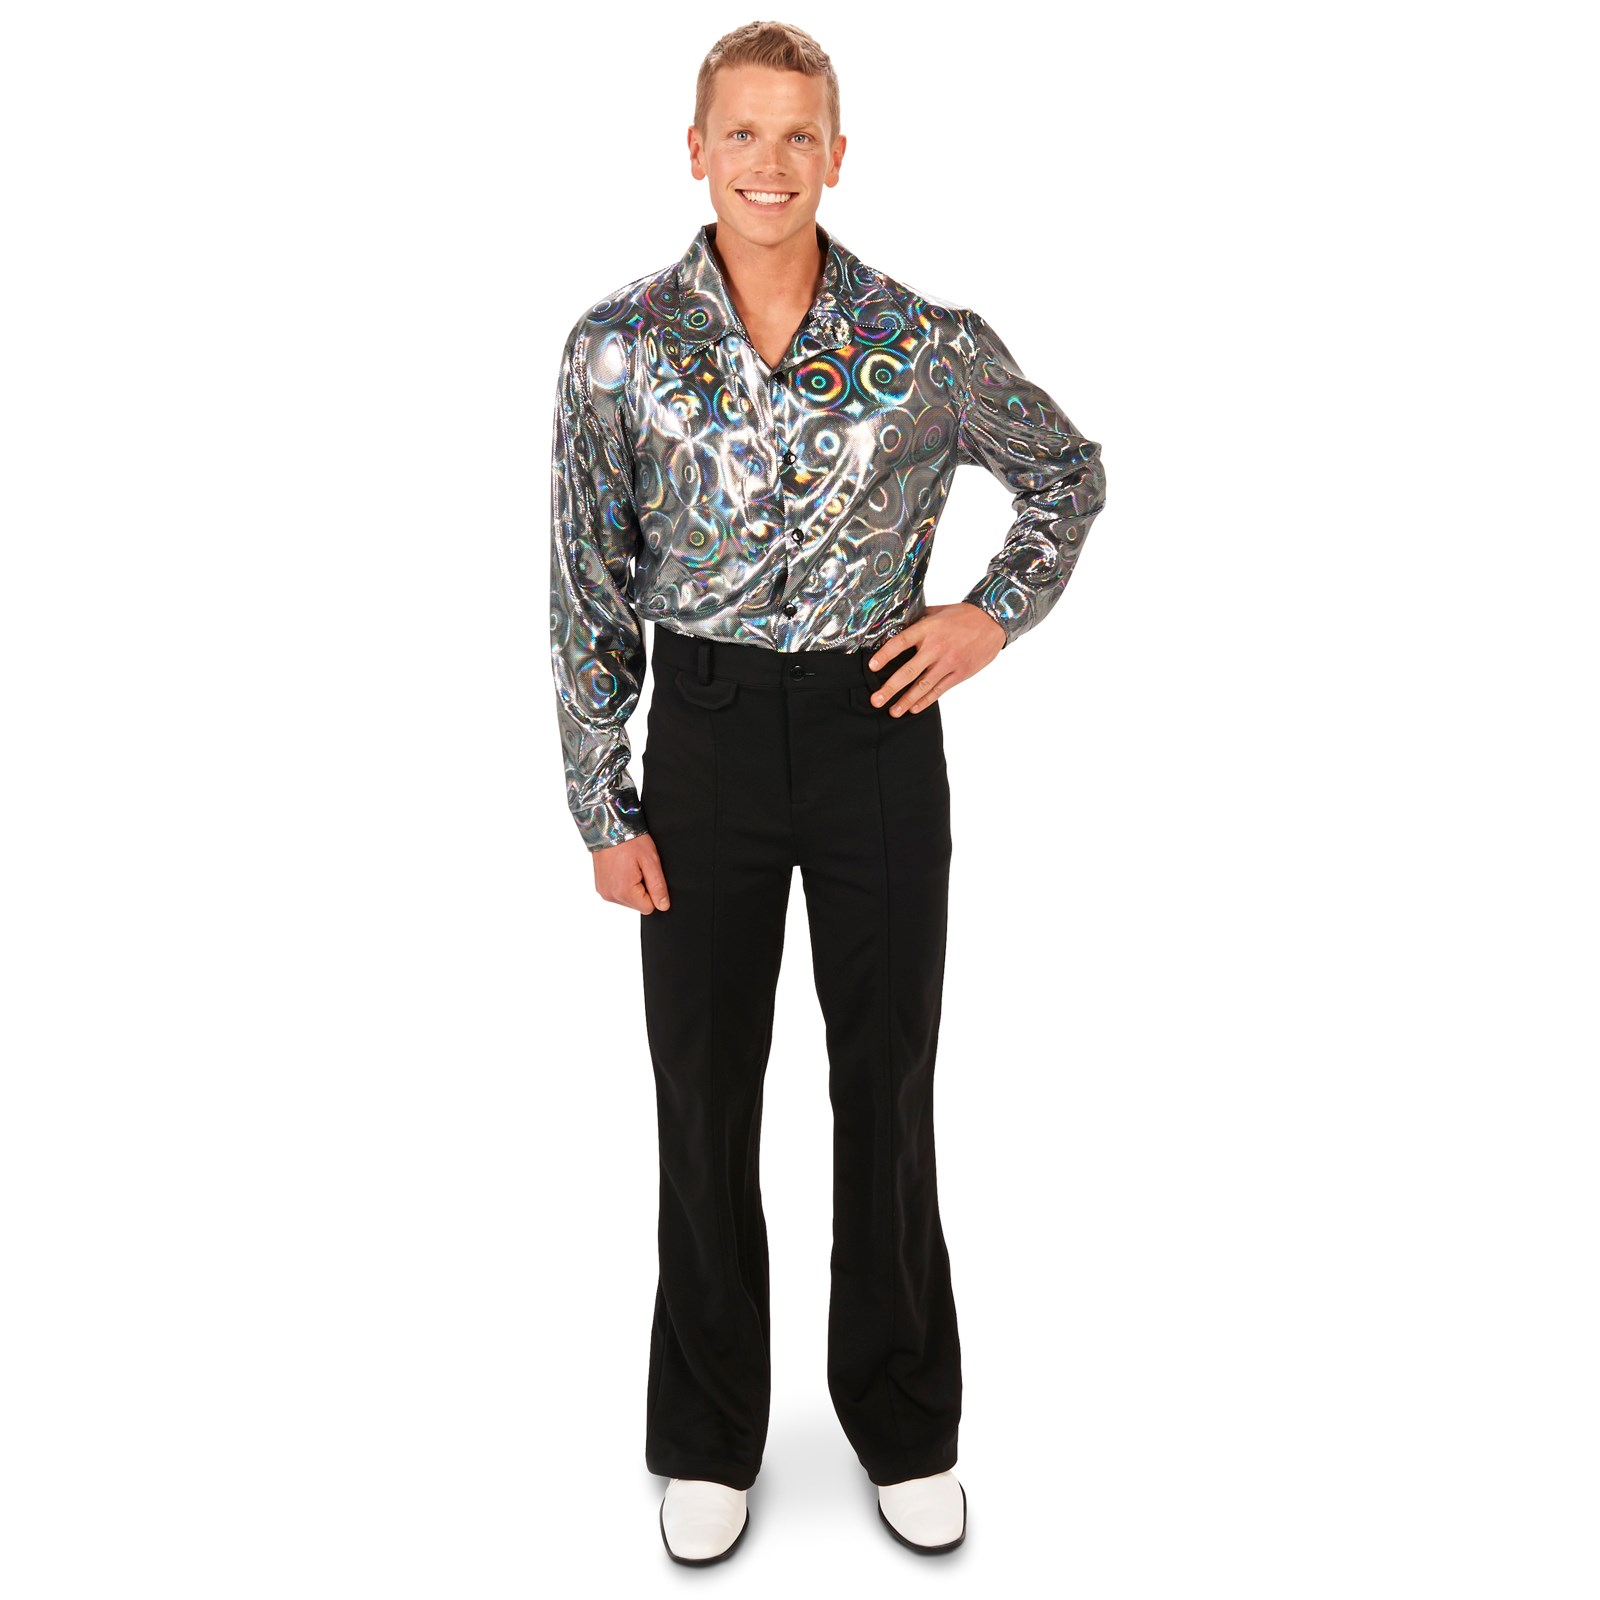 Silver Disco Shirt Adult Costume | BuyCostumes.com